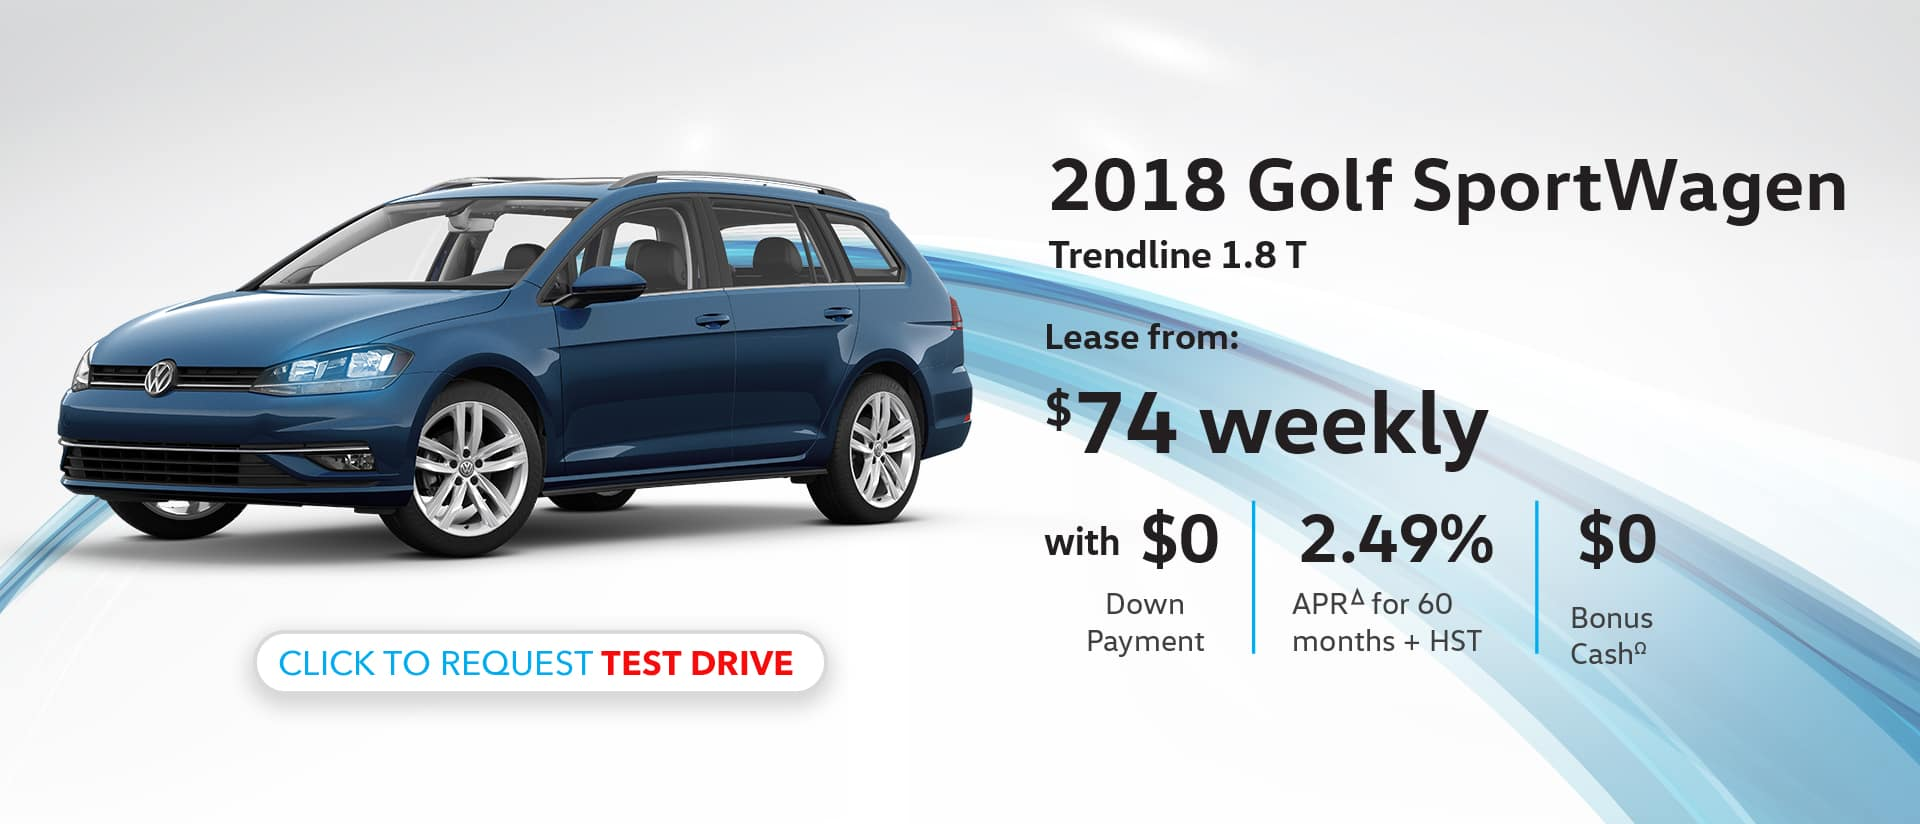 Maple Volkswagen 2018 Golf SportWagen